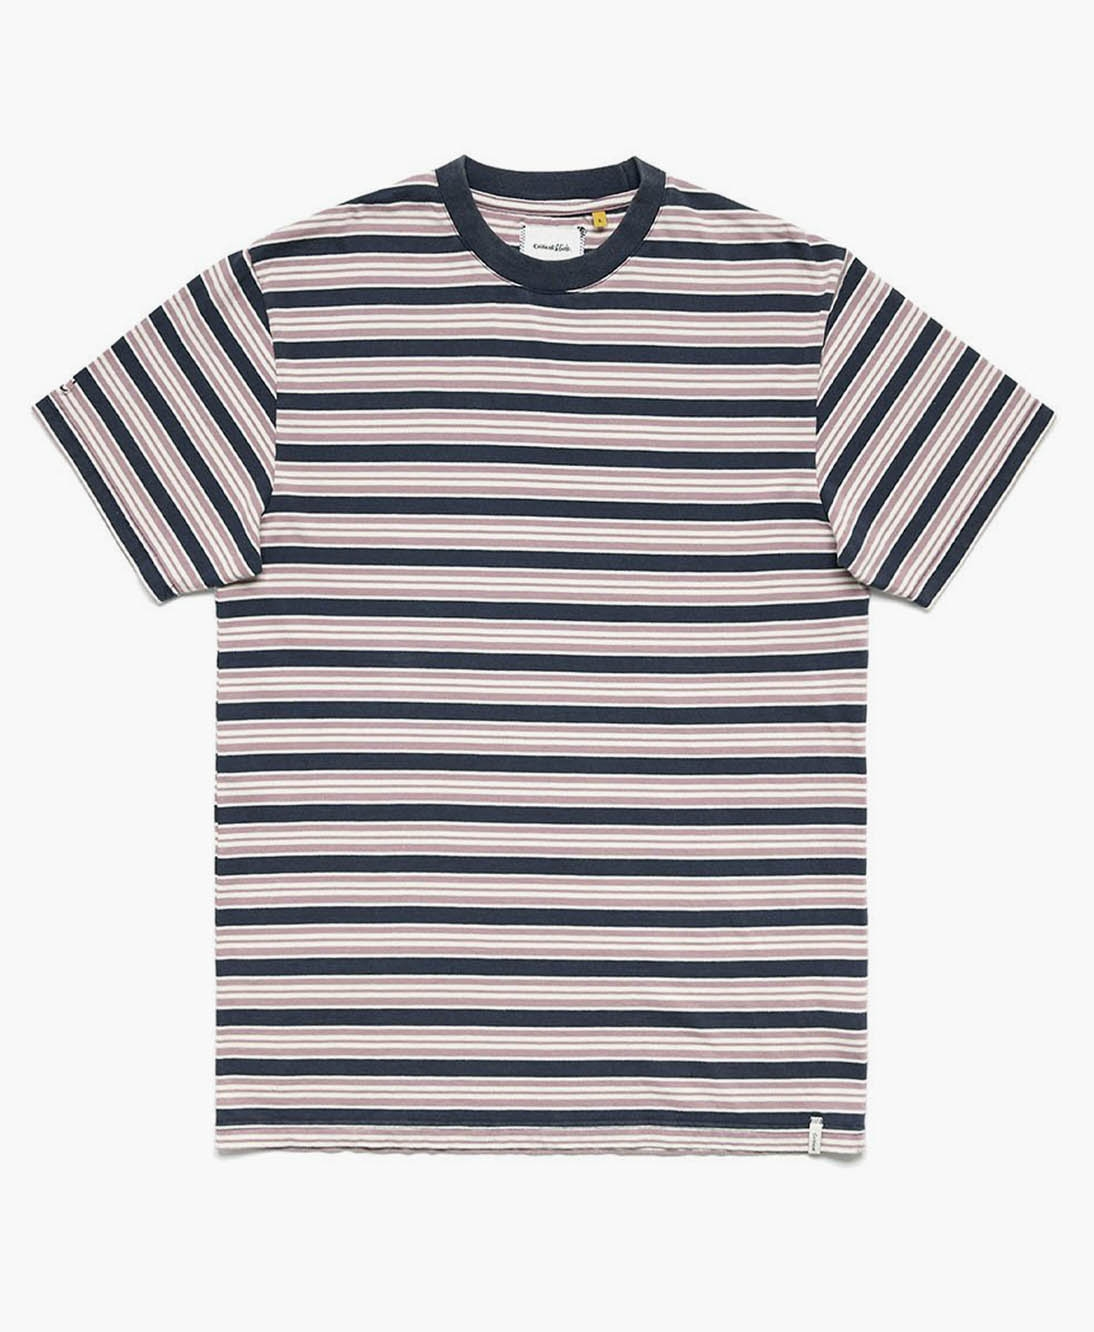 TCSS - Quiver Tee